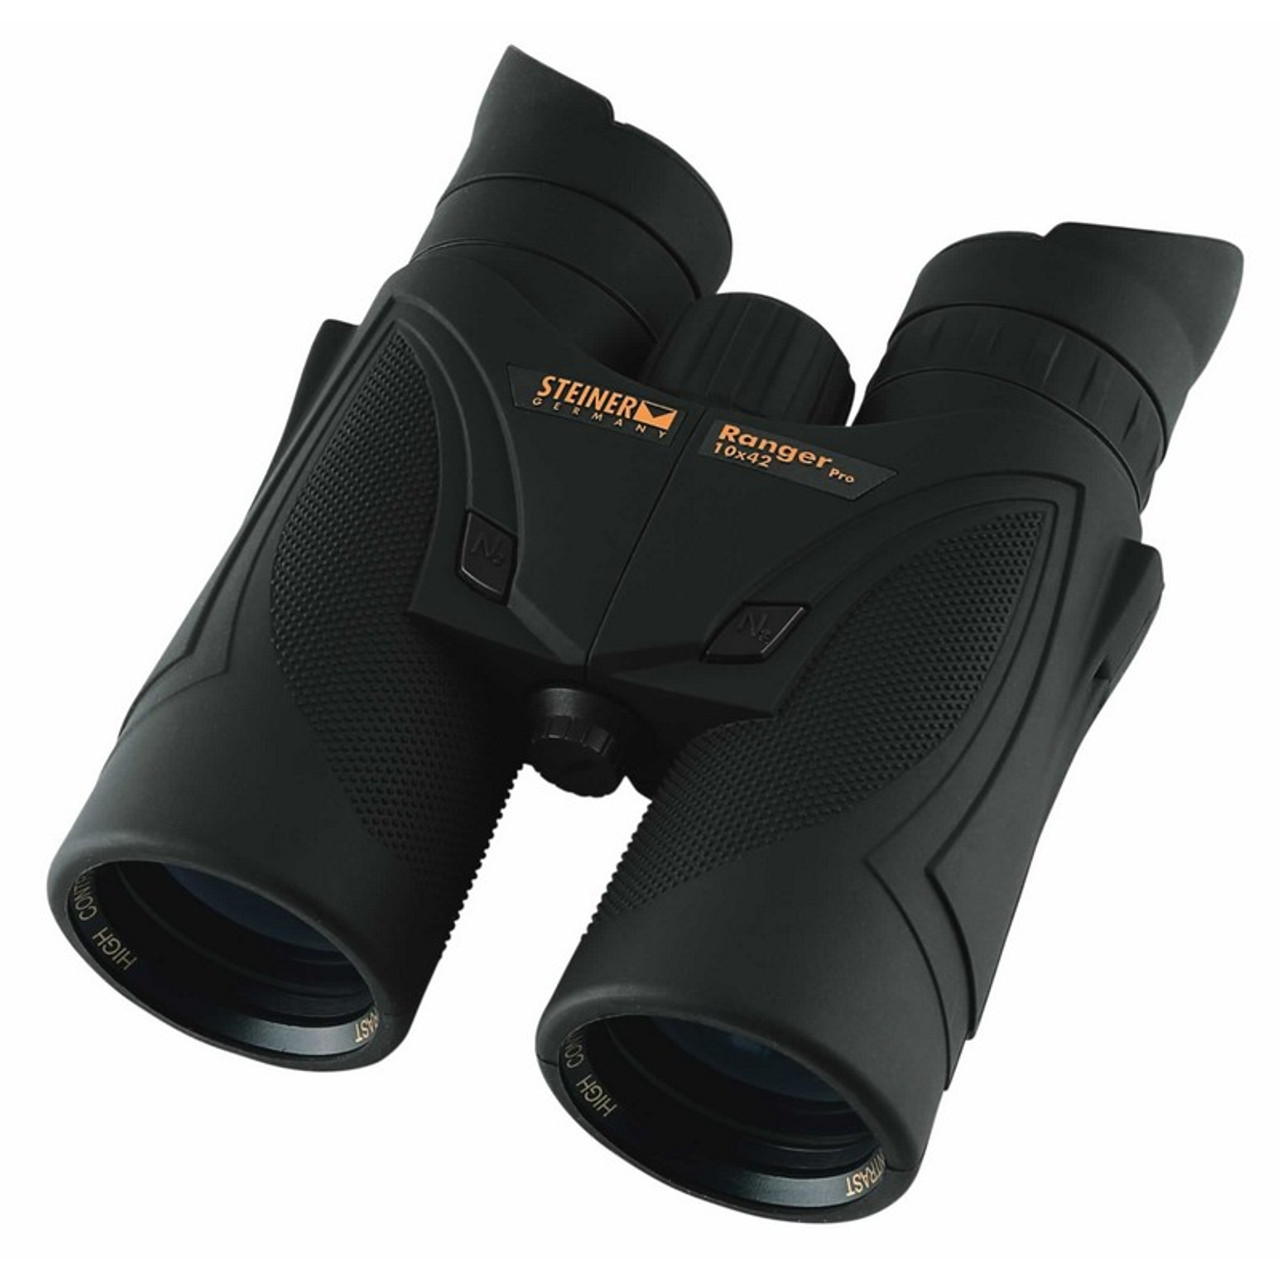 Best price for Steiner Ranger Pro 10x42 Binoculars, on sale from Bradford Stalker.